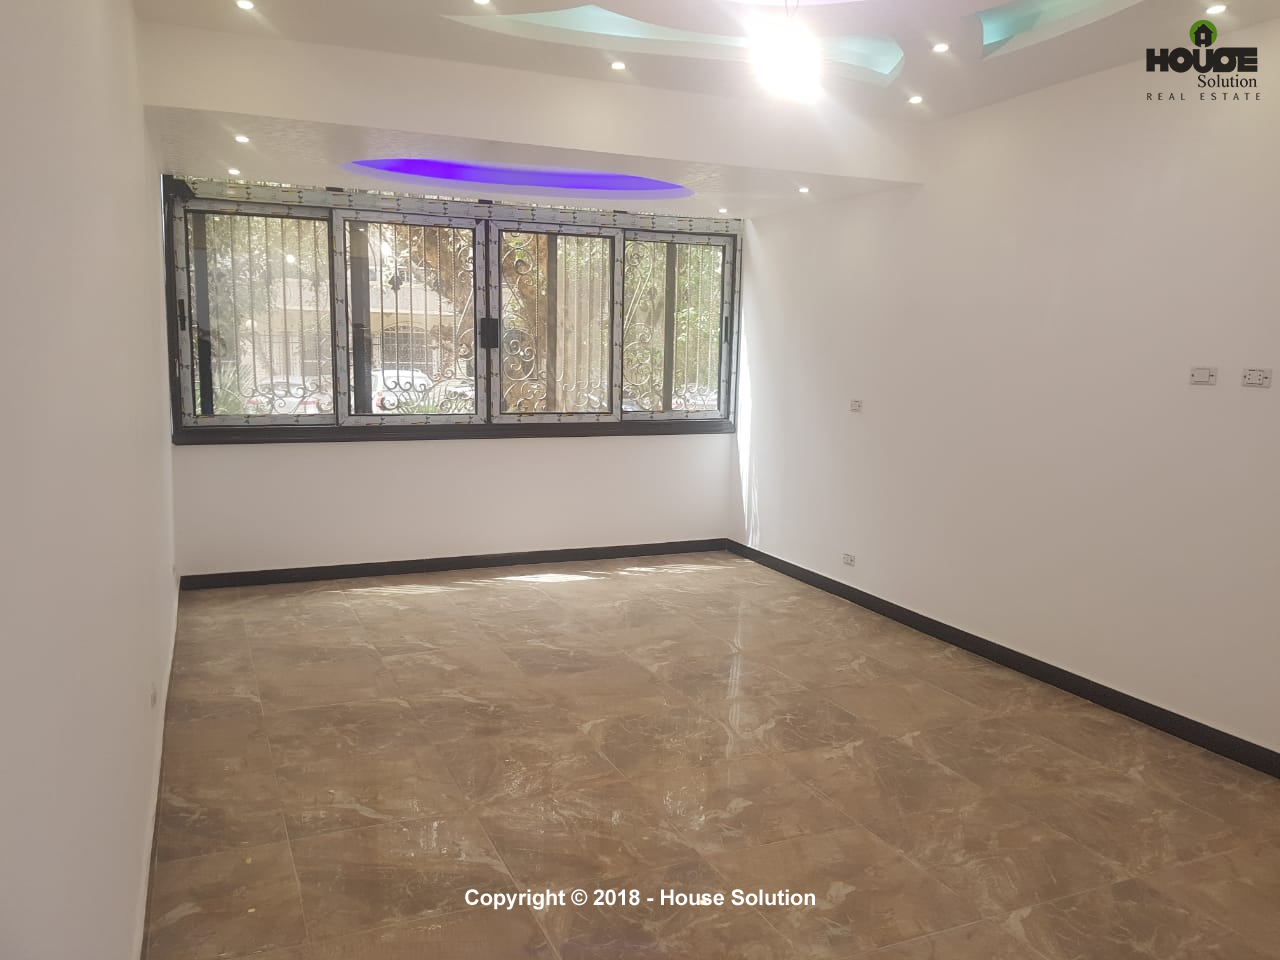 Office Spaces For Rent In Maadi Maadi Sarayat -#14